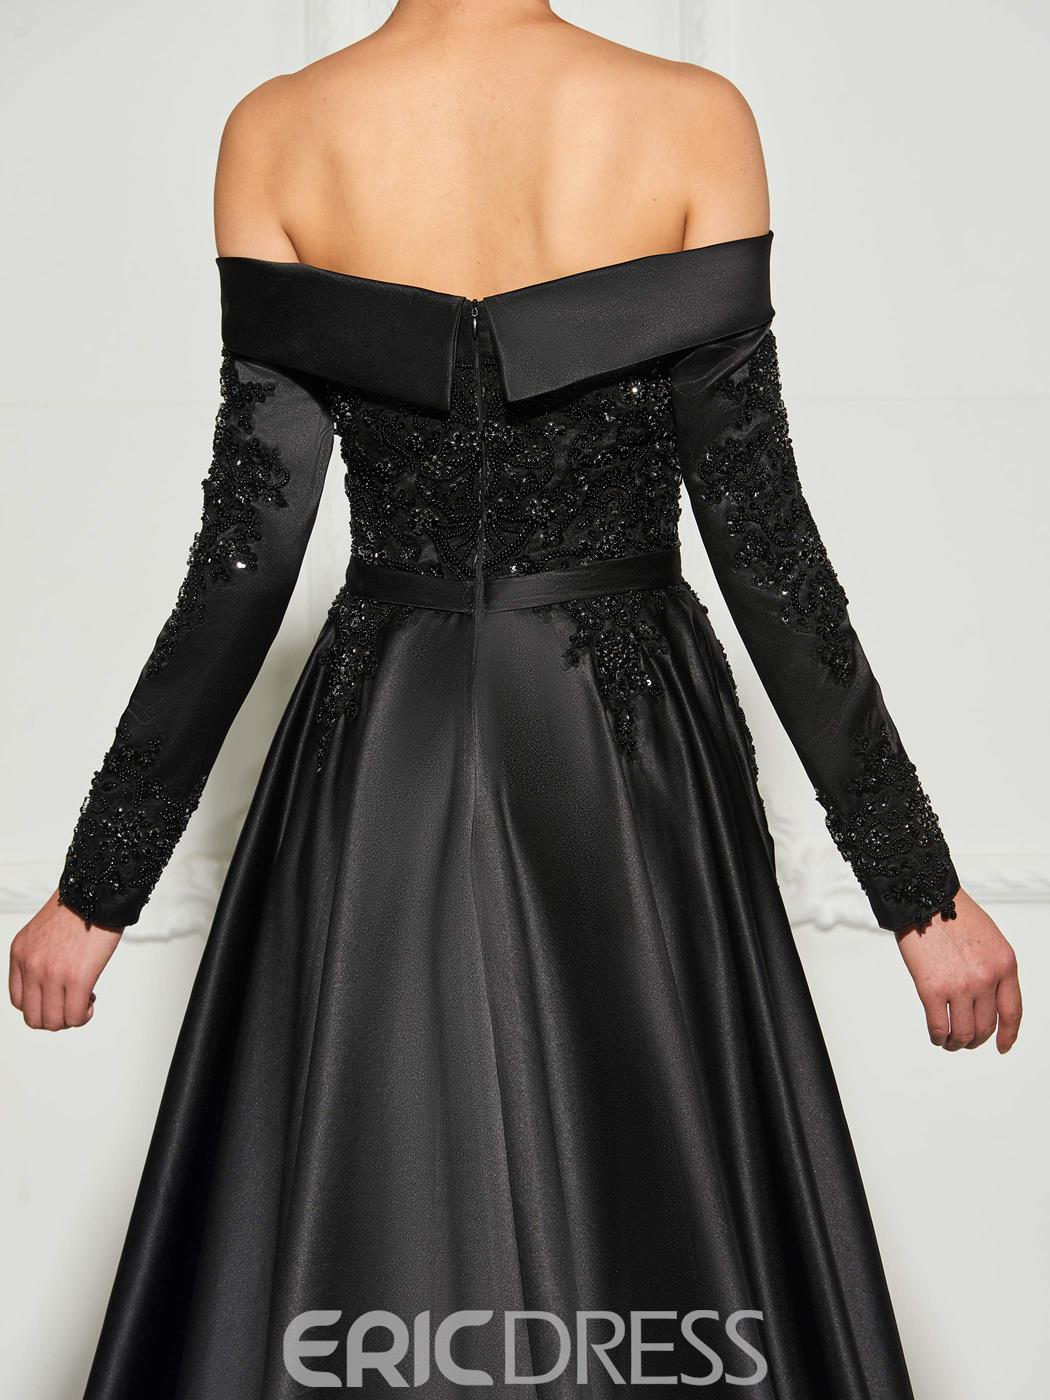 Ericdress Long Sleeve Off The Shoulder Beaded Black Prom